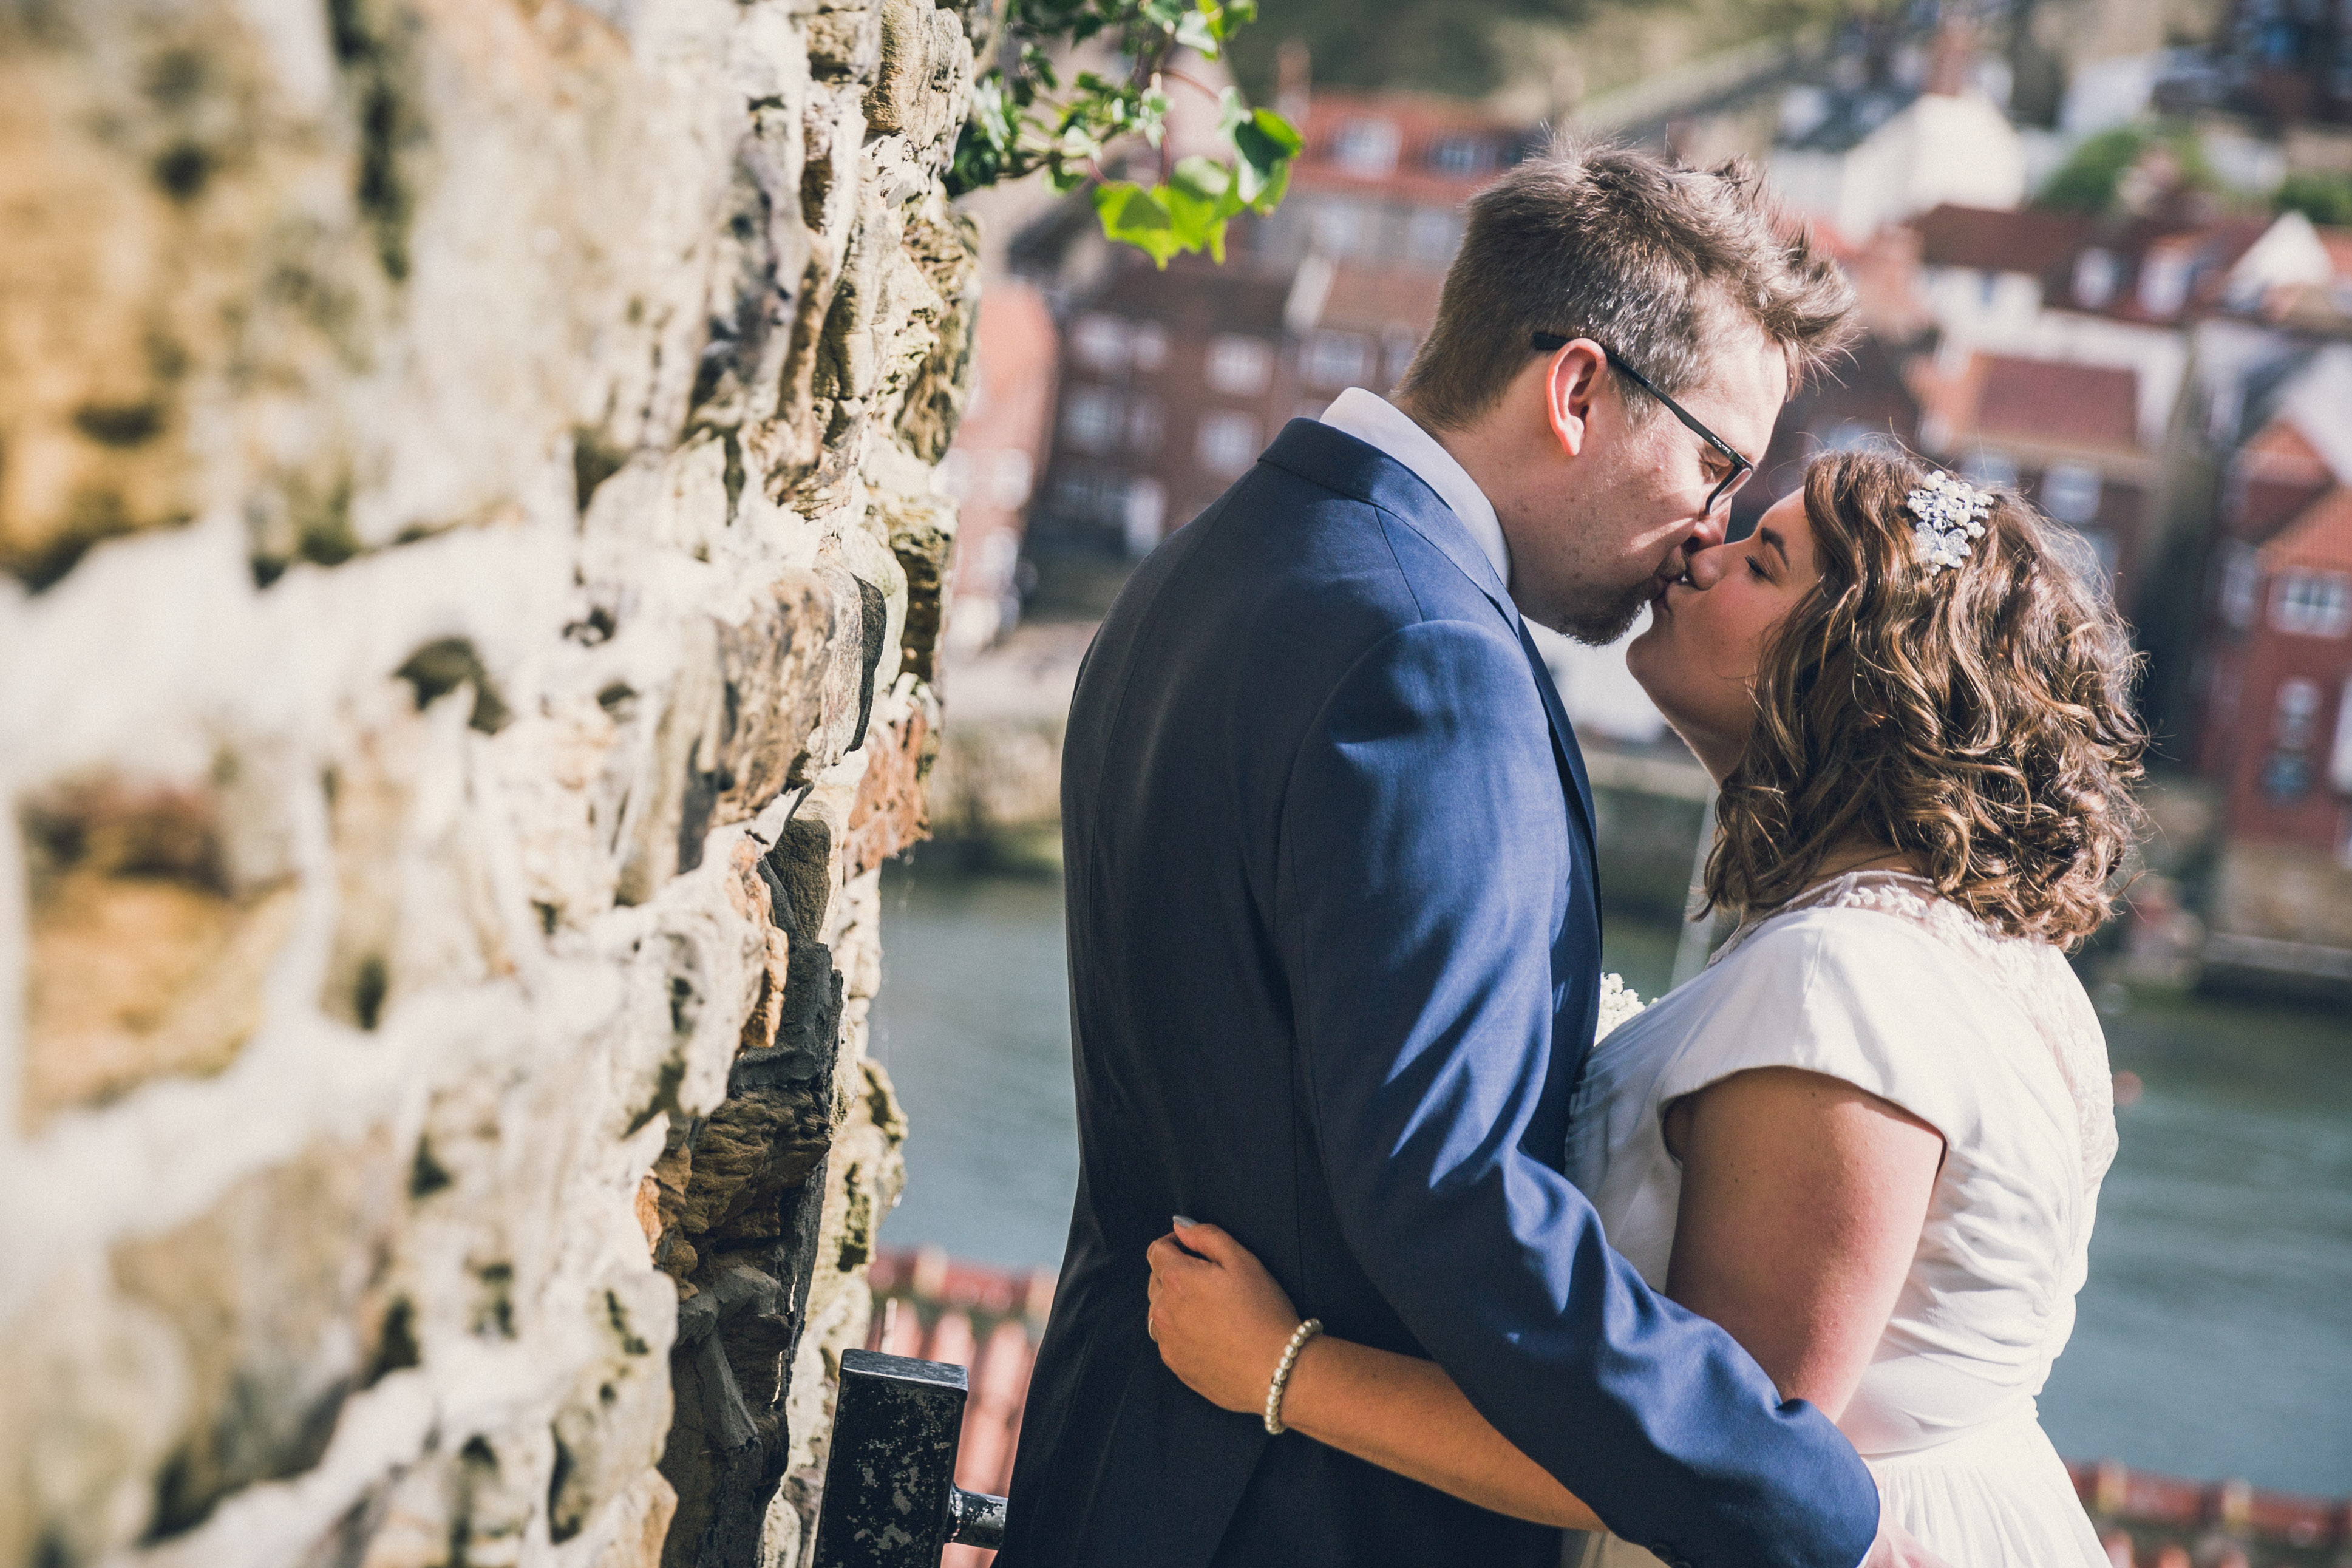 A Whitby wedding photo by Jack Cook